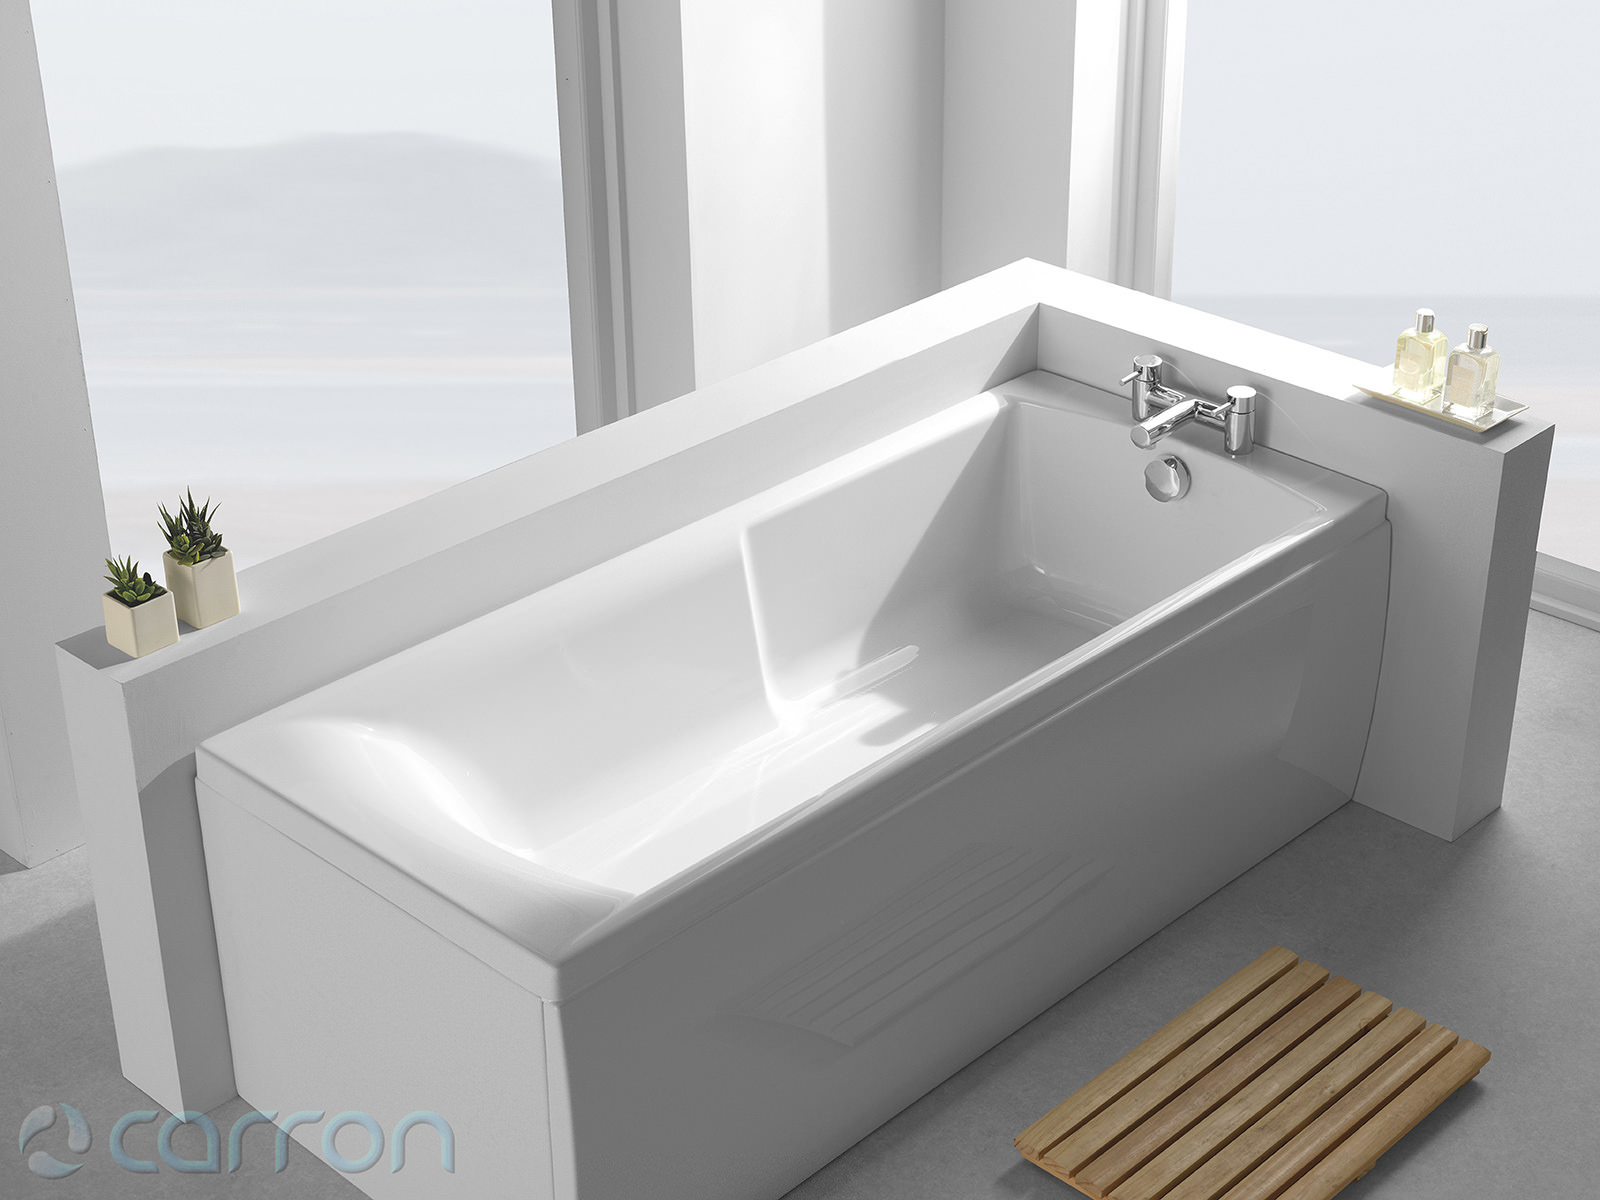 Carron Matrix 5mm Acrylic Single Ended Bath 1600 X 700mm Q4 02124